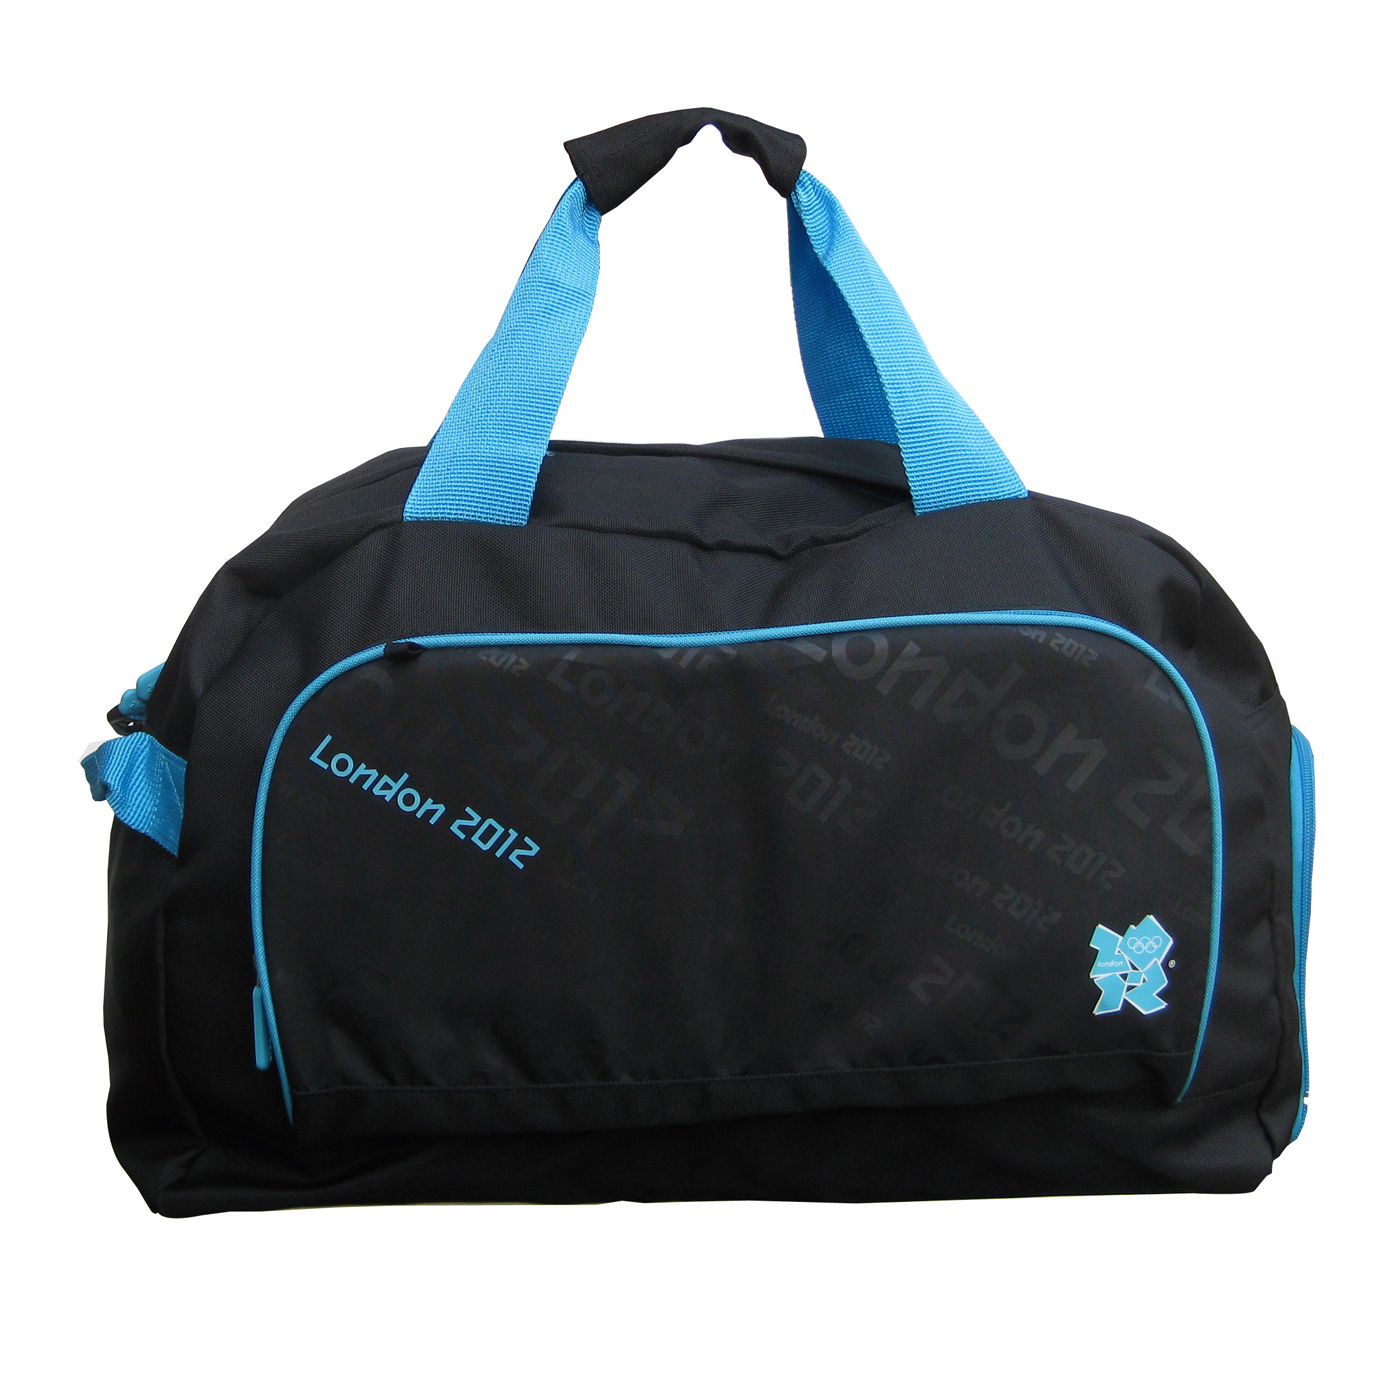 London 2012 black holdall